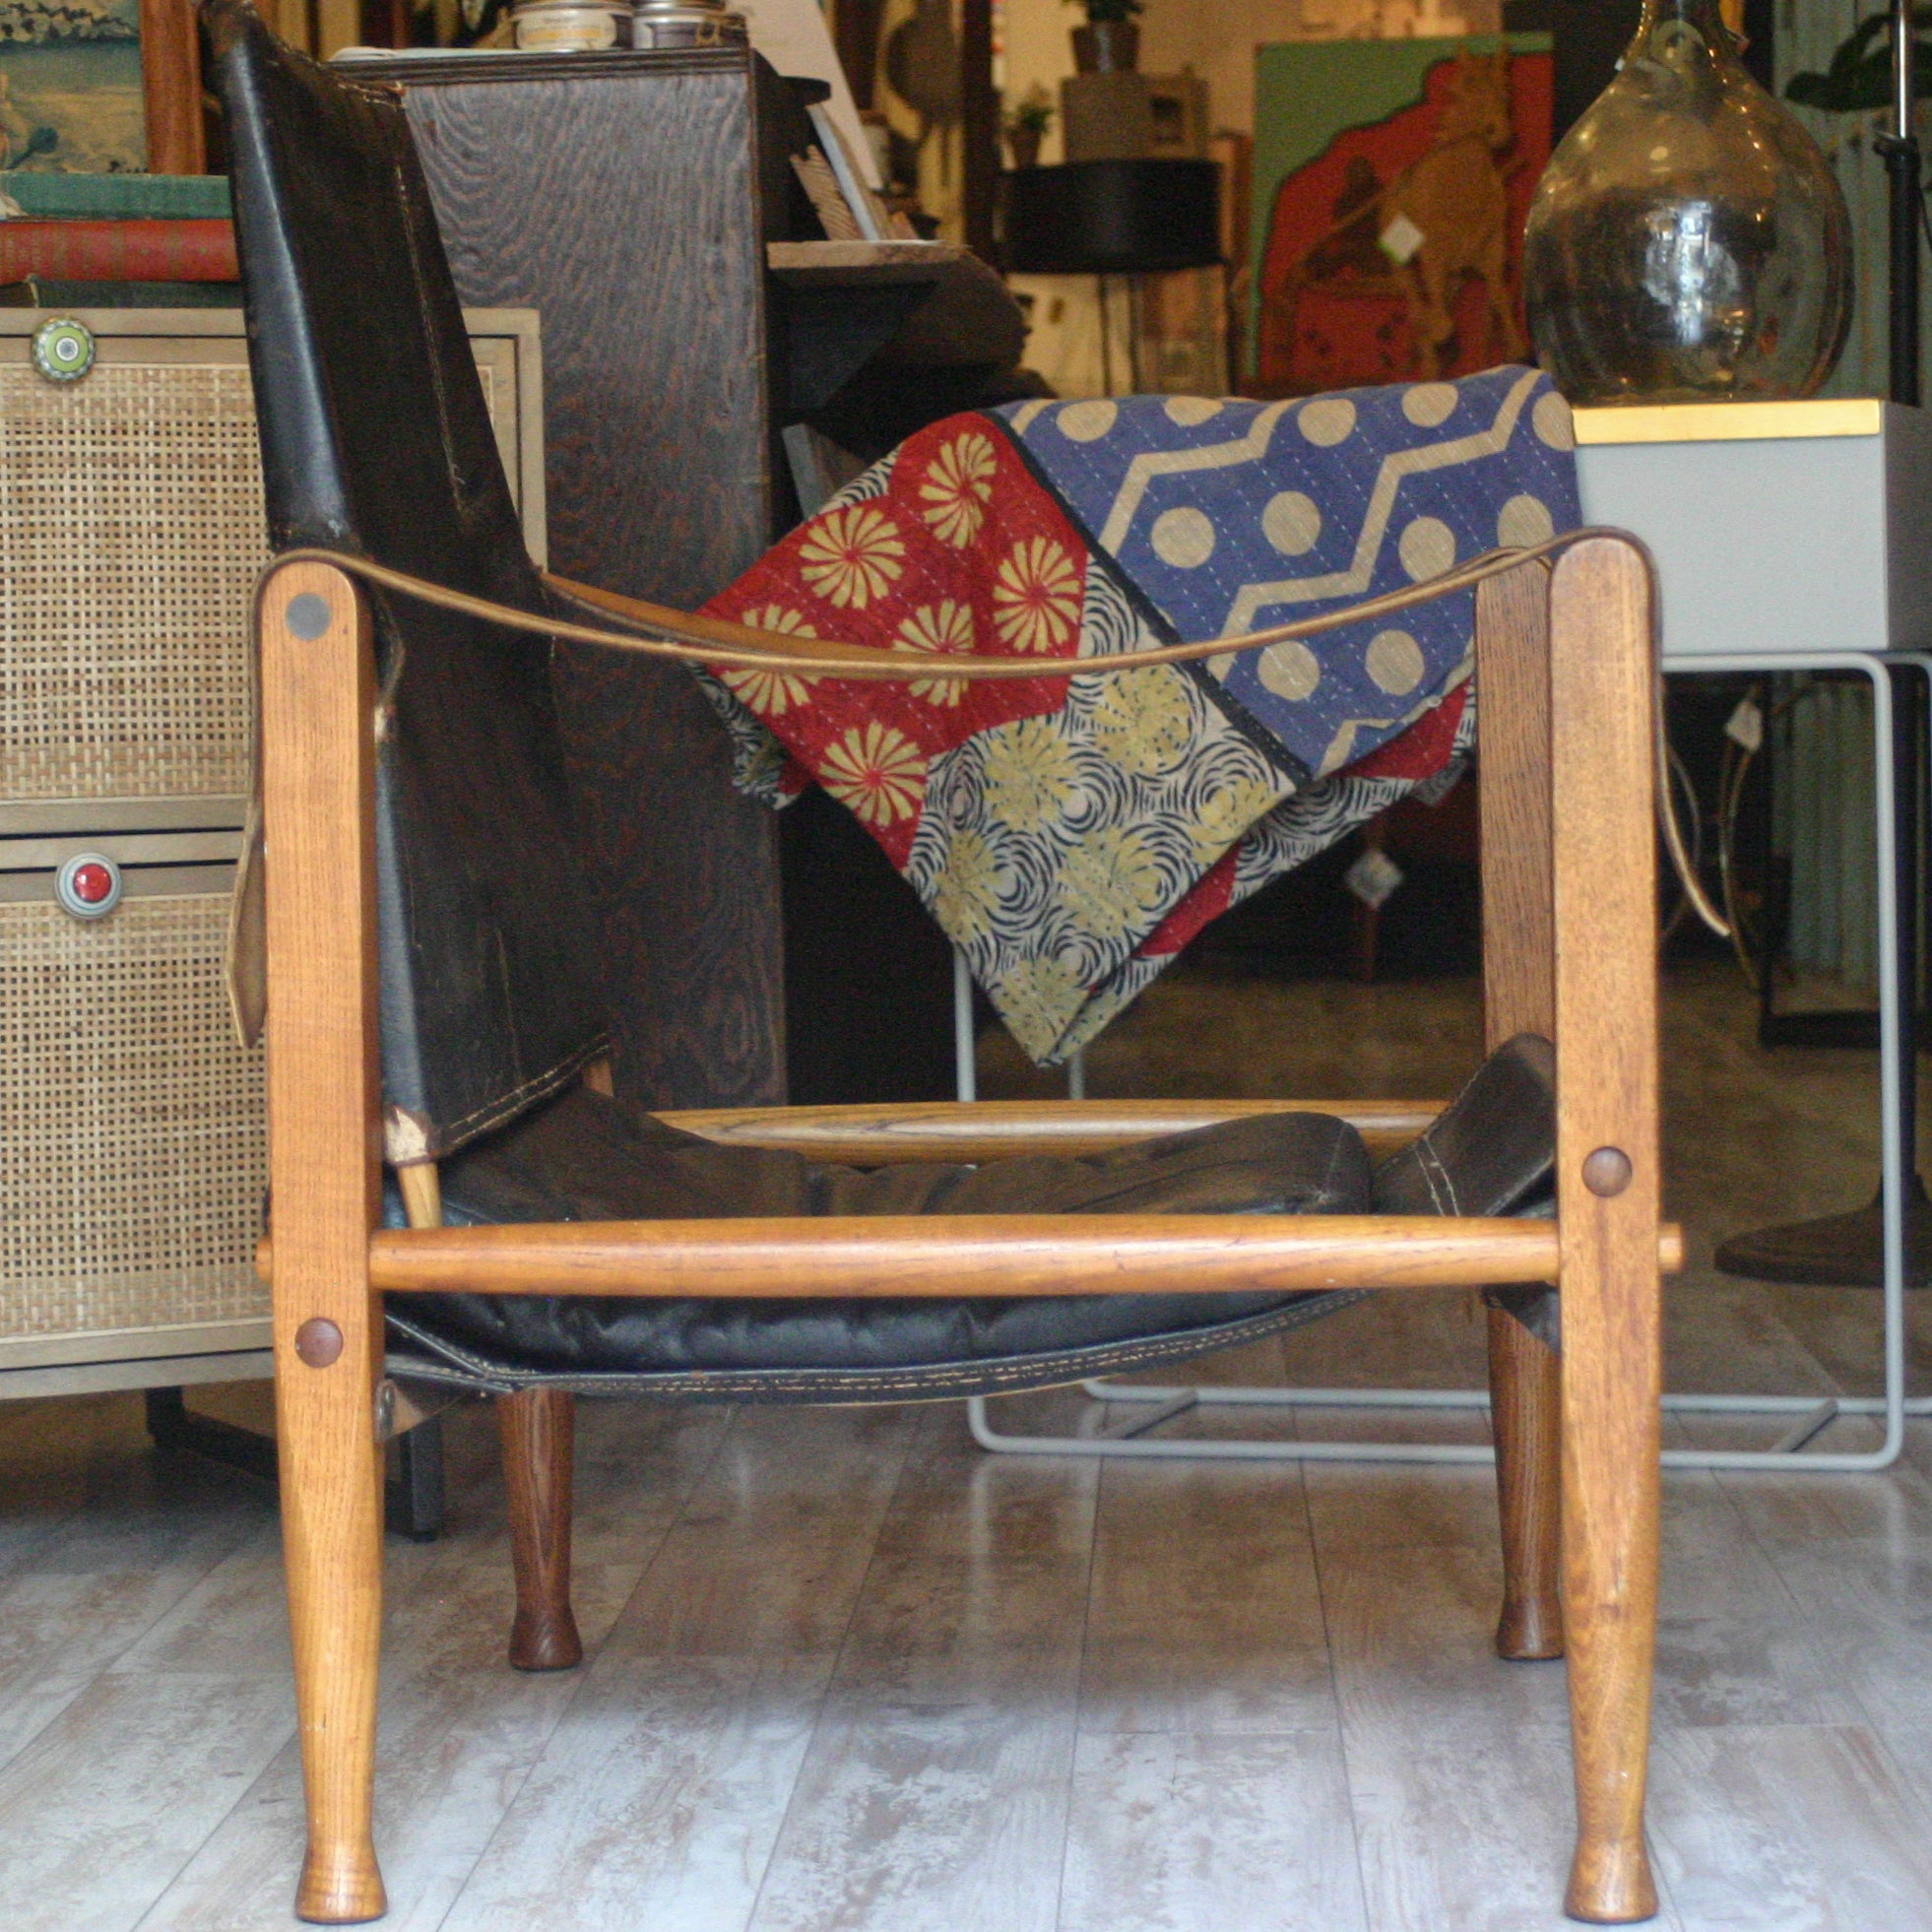 Vintage Safari Chair by Kaare Klint